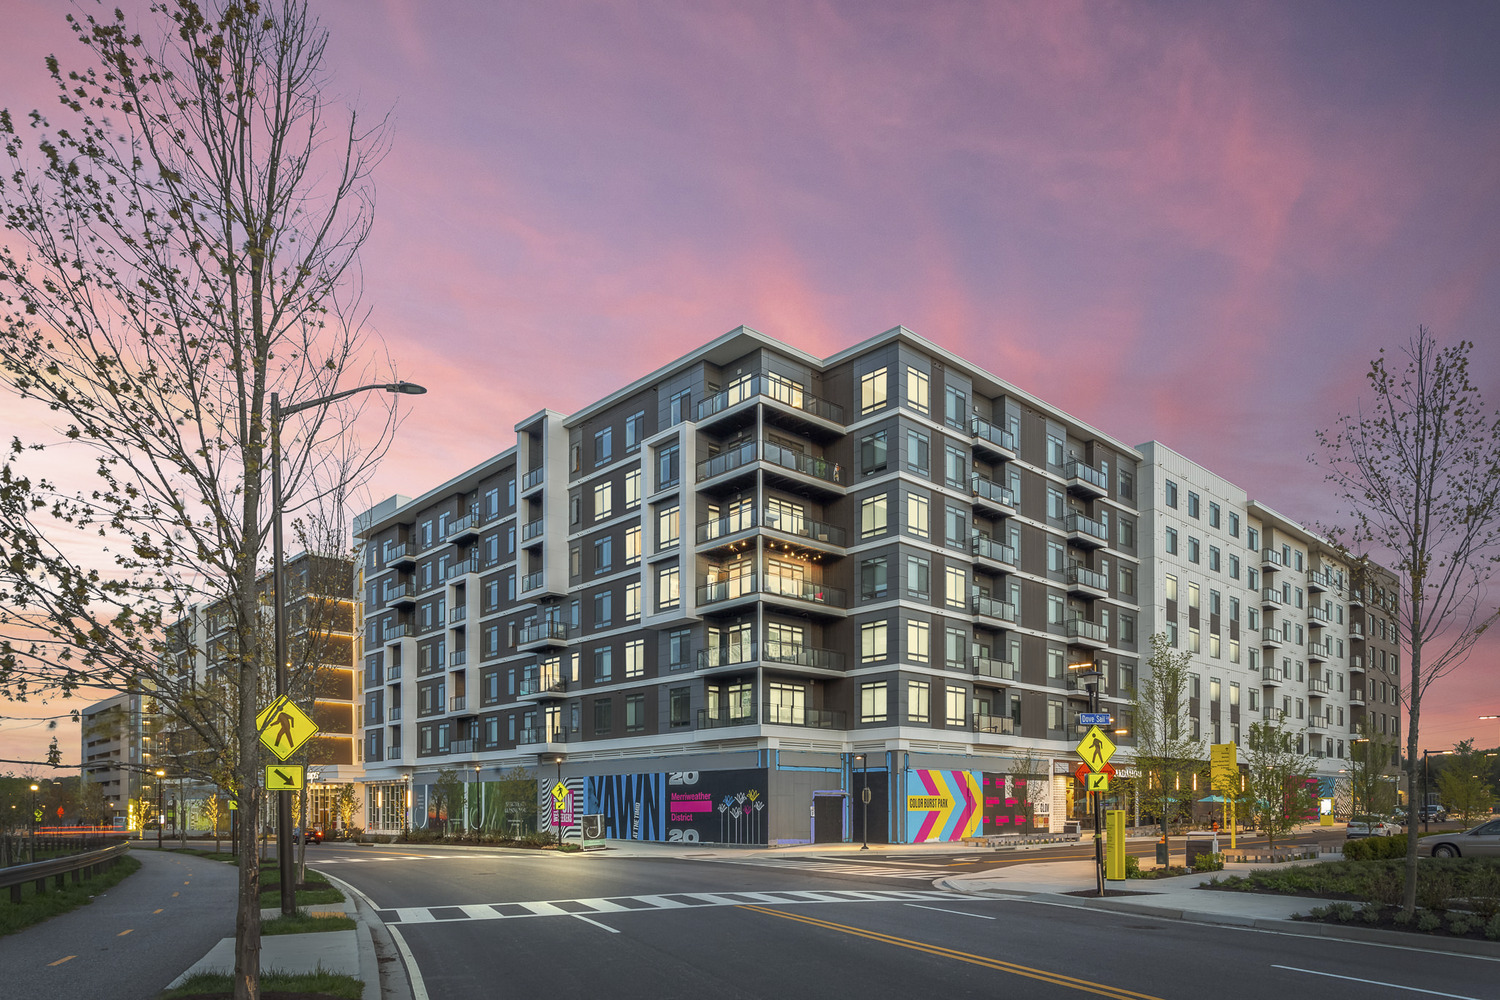 CBG builds Juniper, a 382-Unit Mixed-Use Community with Eight Stories of Above-Grade Parking in Columbia, MD - Image #1